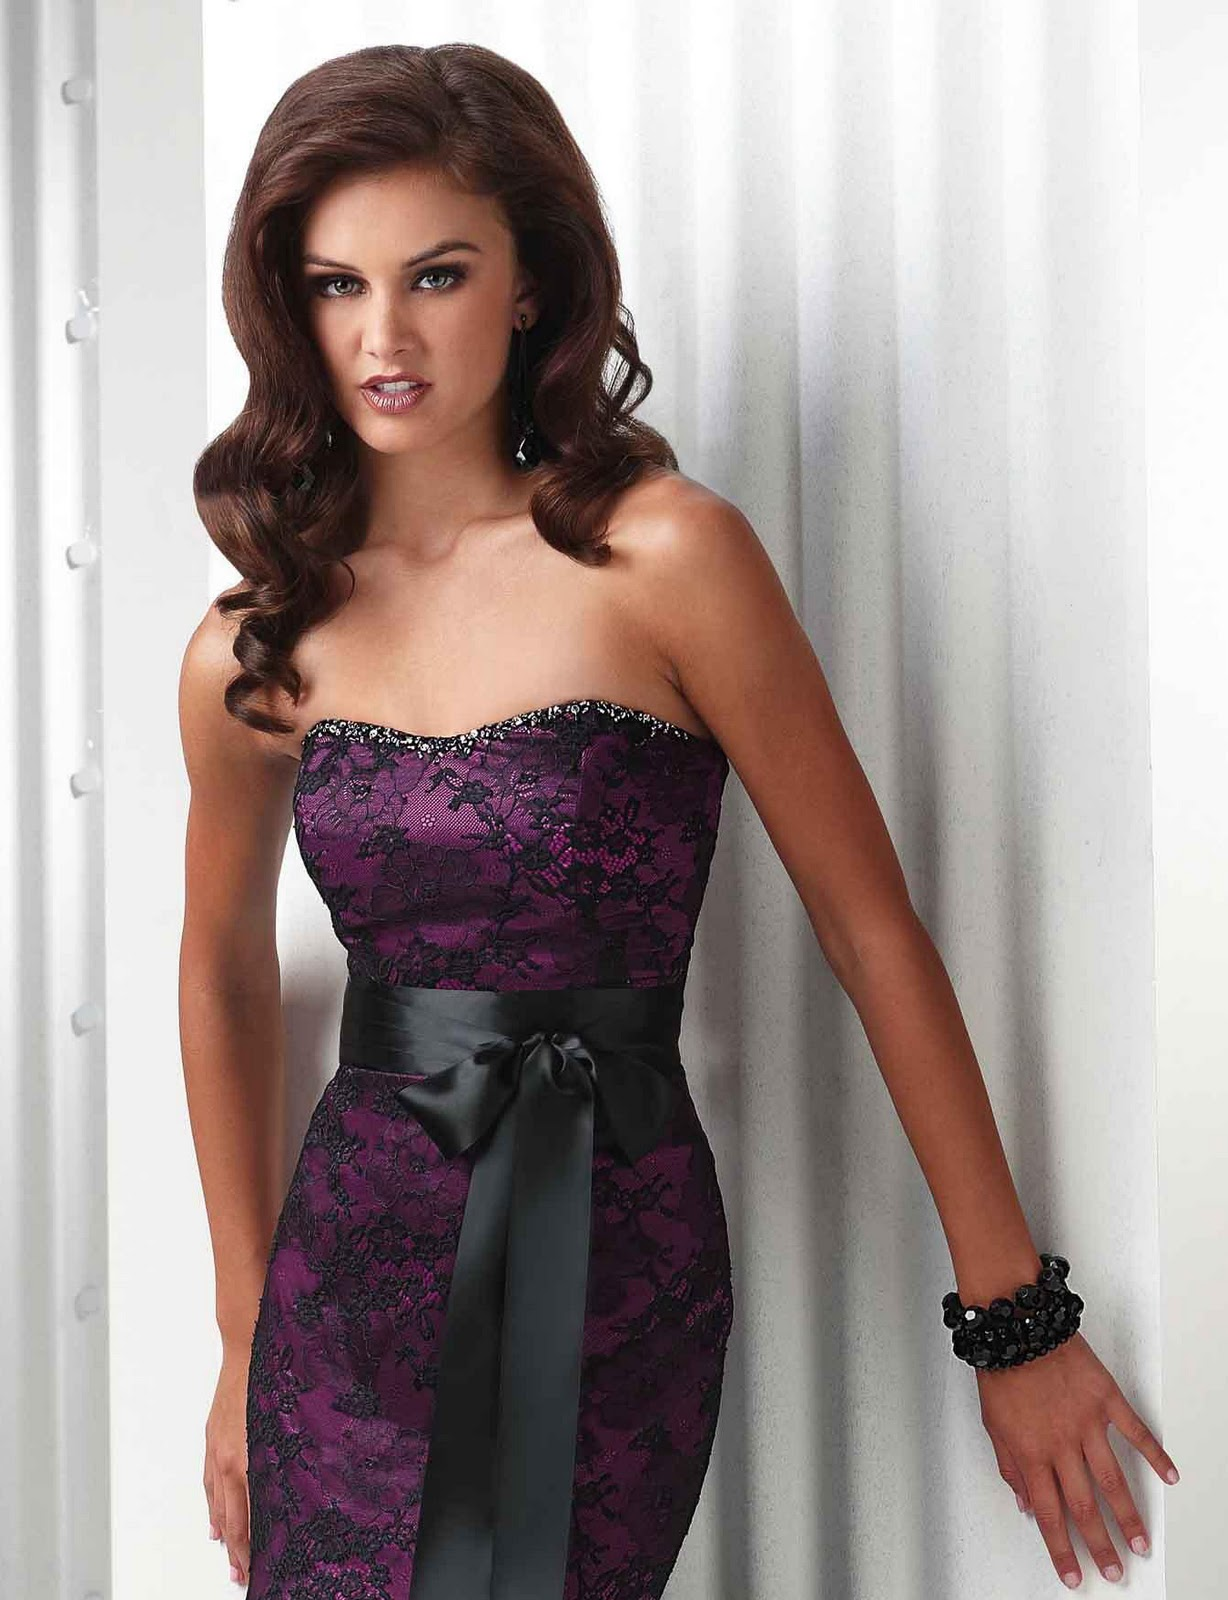 Purple and Black Wedding Dress Designs Ideas - Wedding Dress